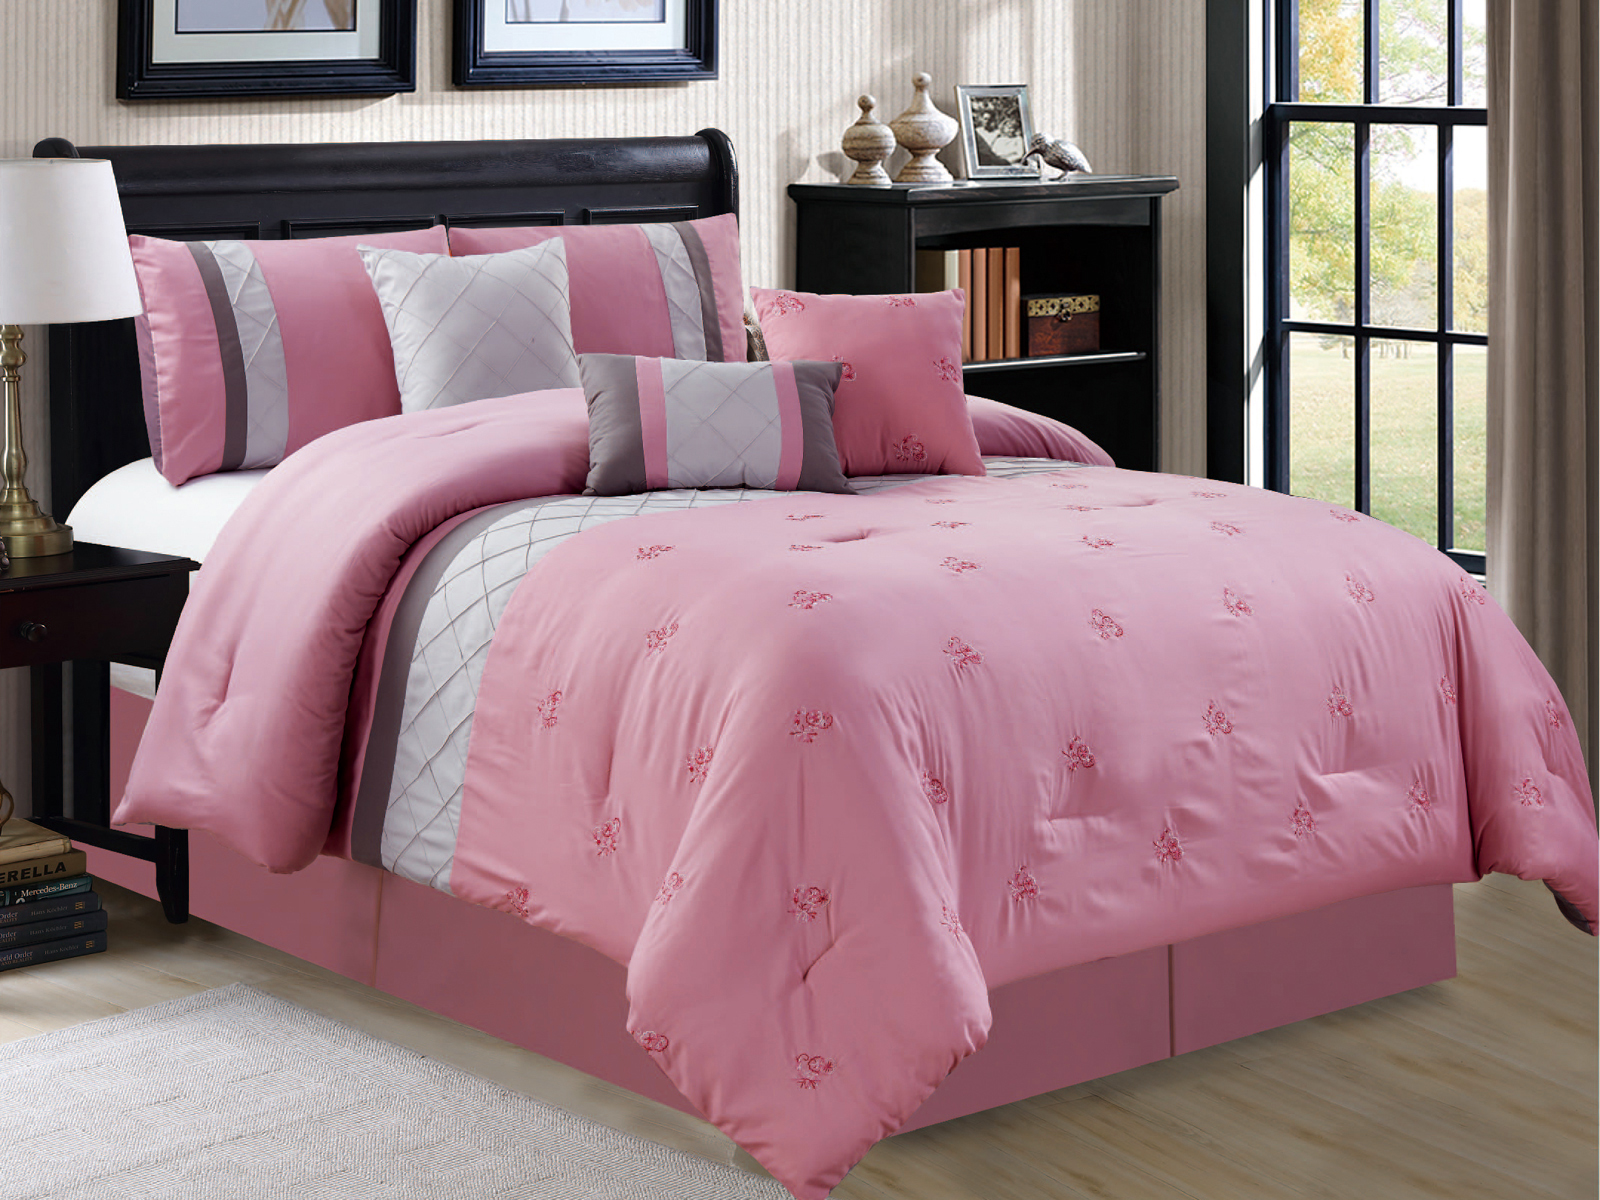 7p floral embroidery pleated diamond stripe comforter set pink gray silver queen 642709899228 ebay. Black Bedroom Furniture Sets. Home Design Ideas